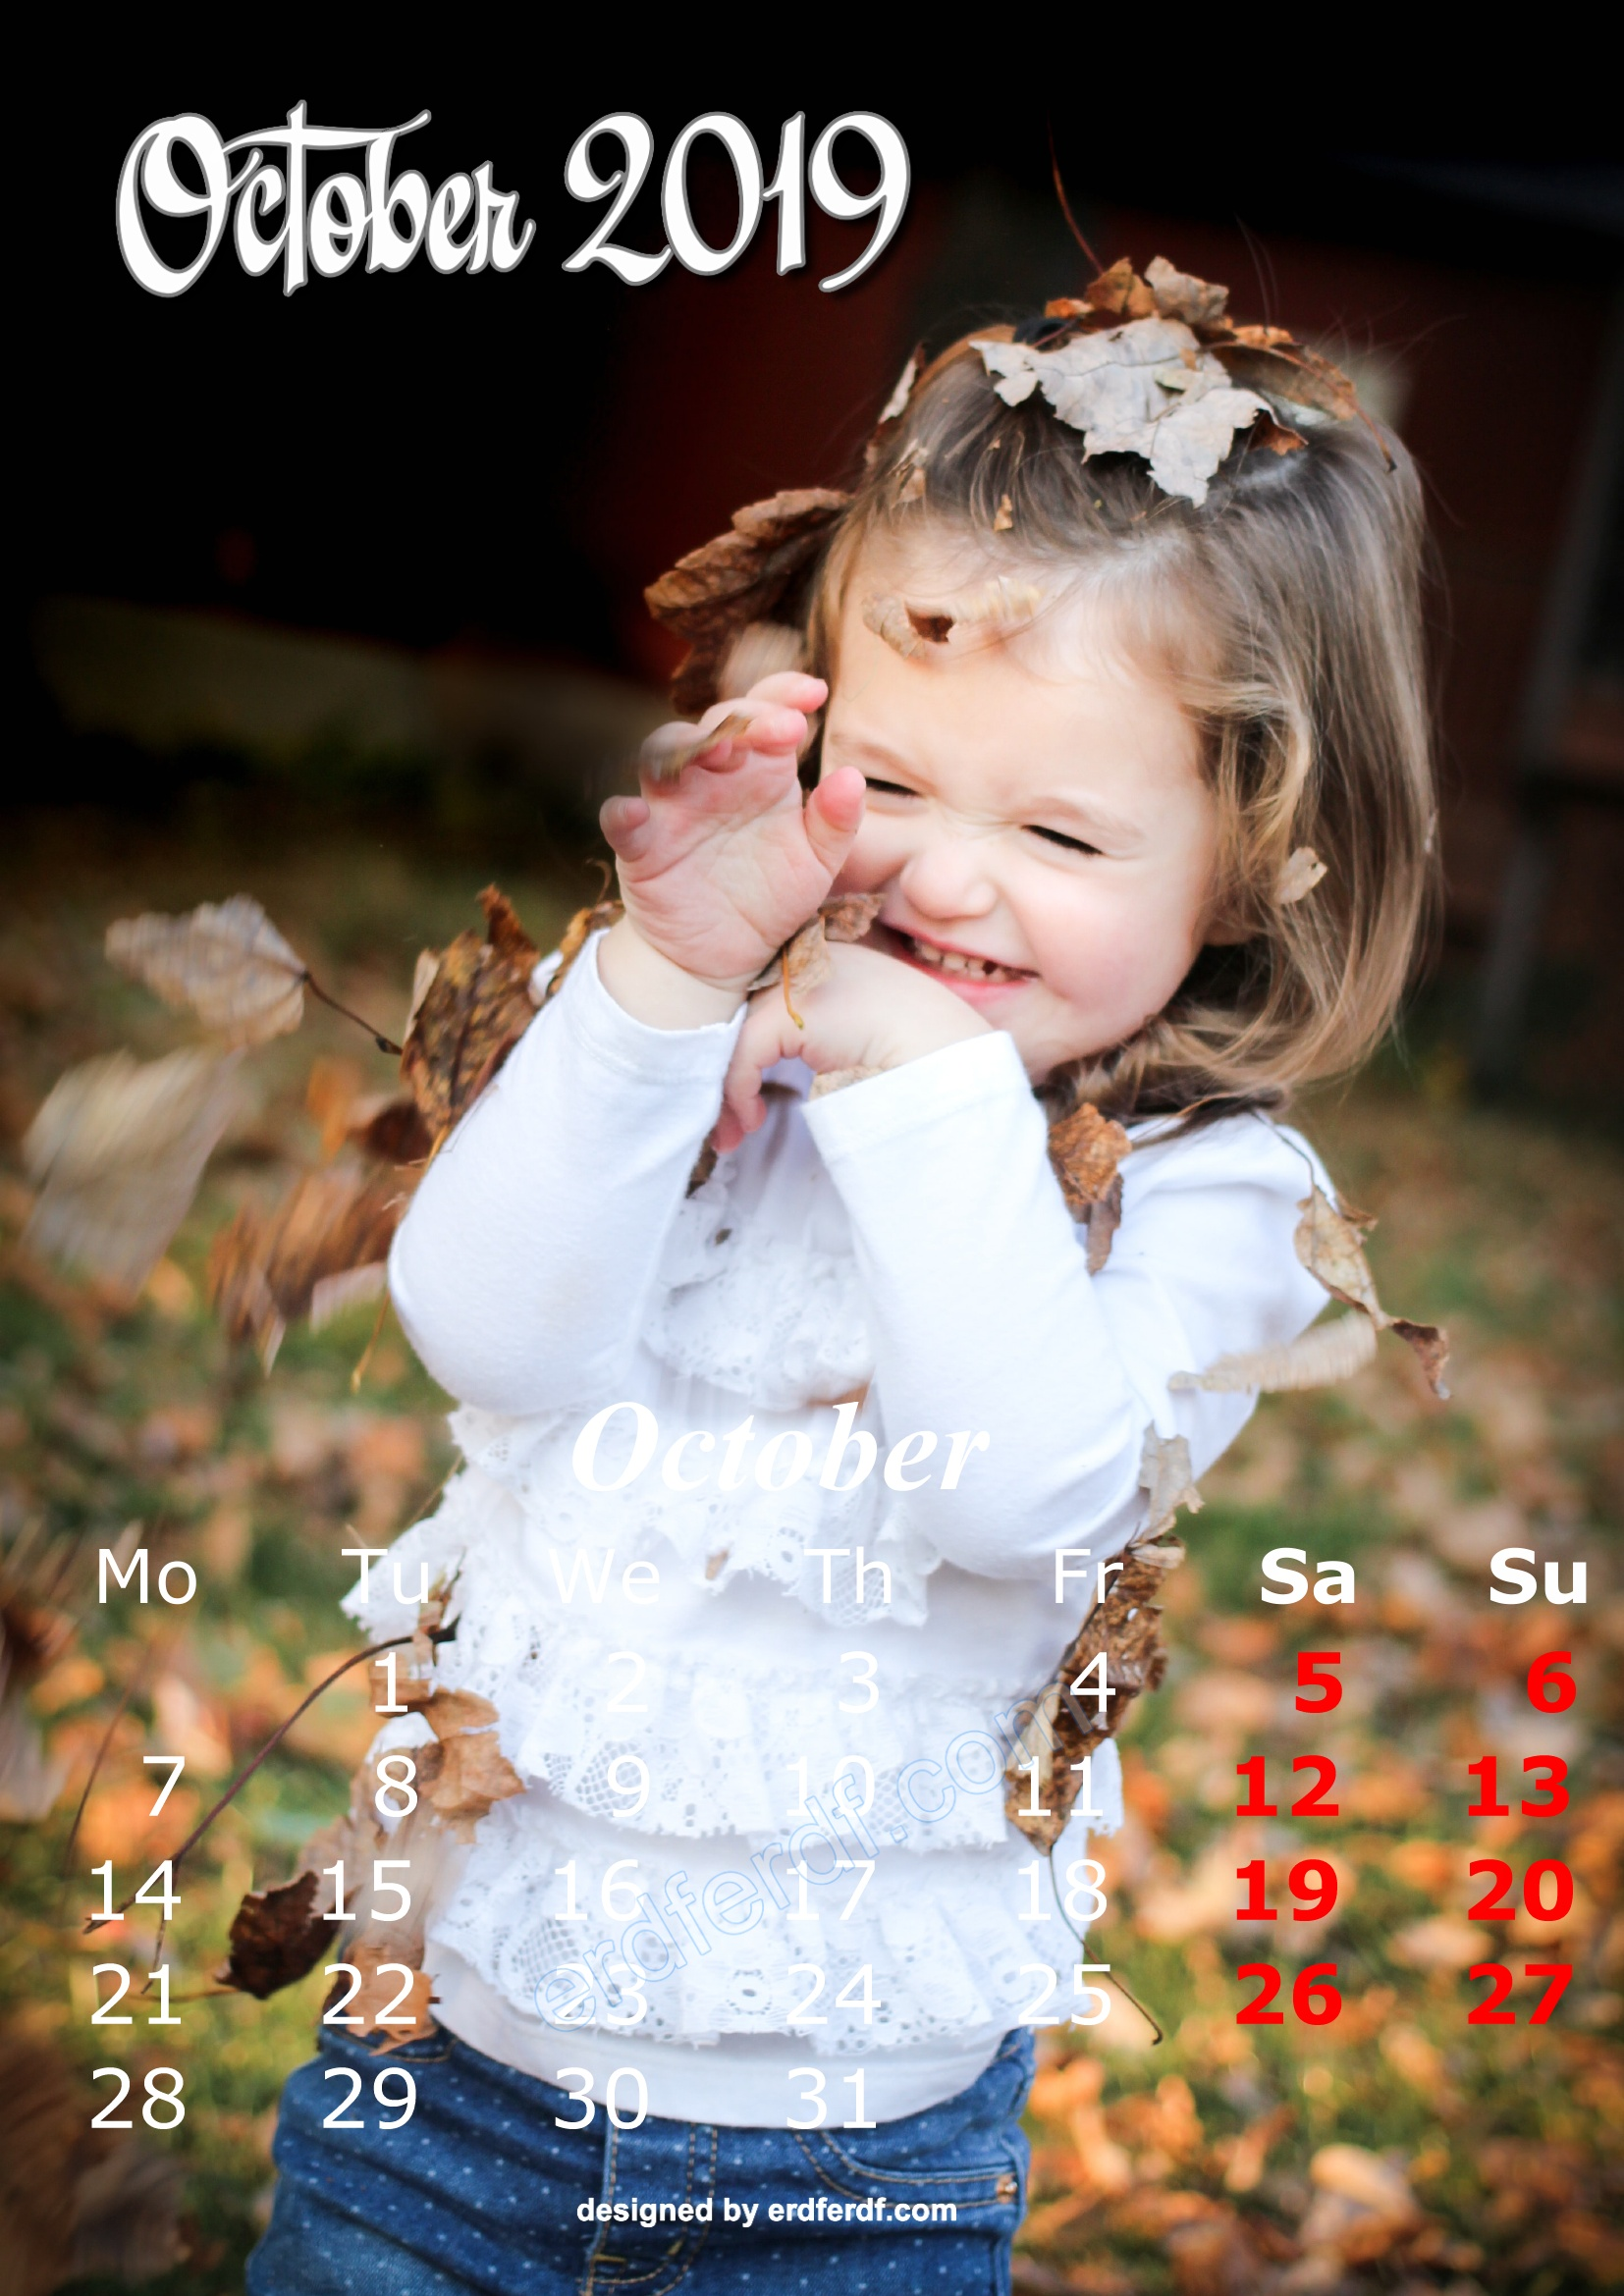 10 October Cute Kids Calendar 2019 Printable Free Design